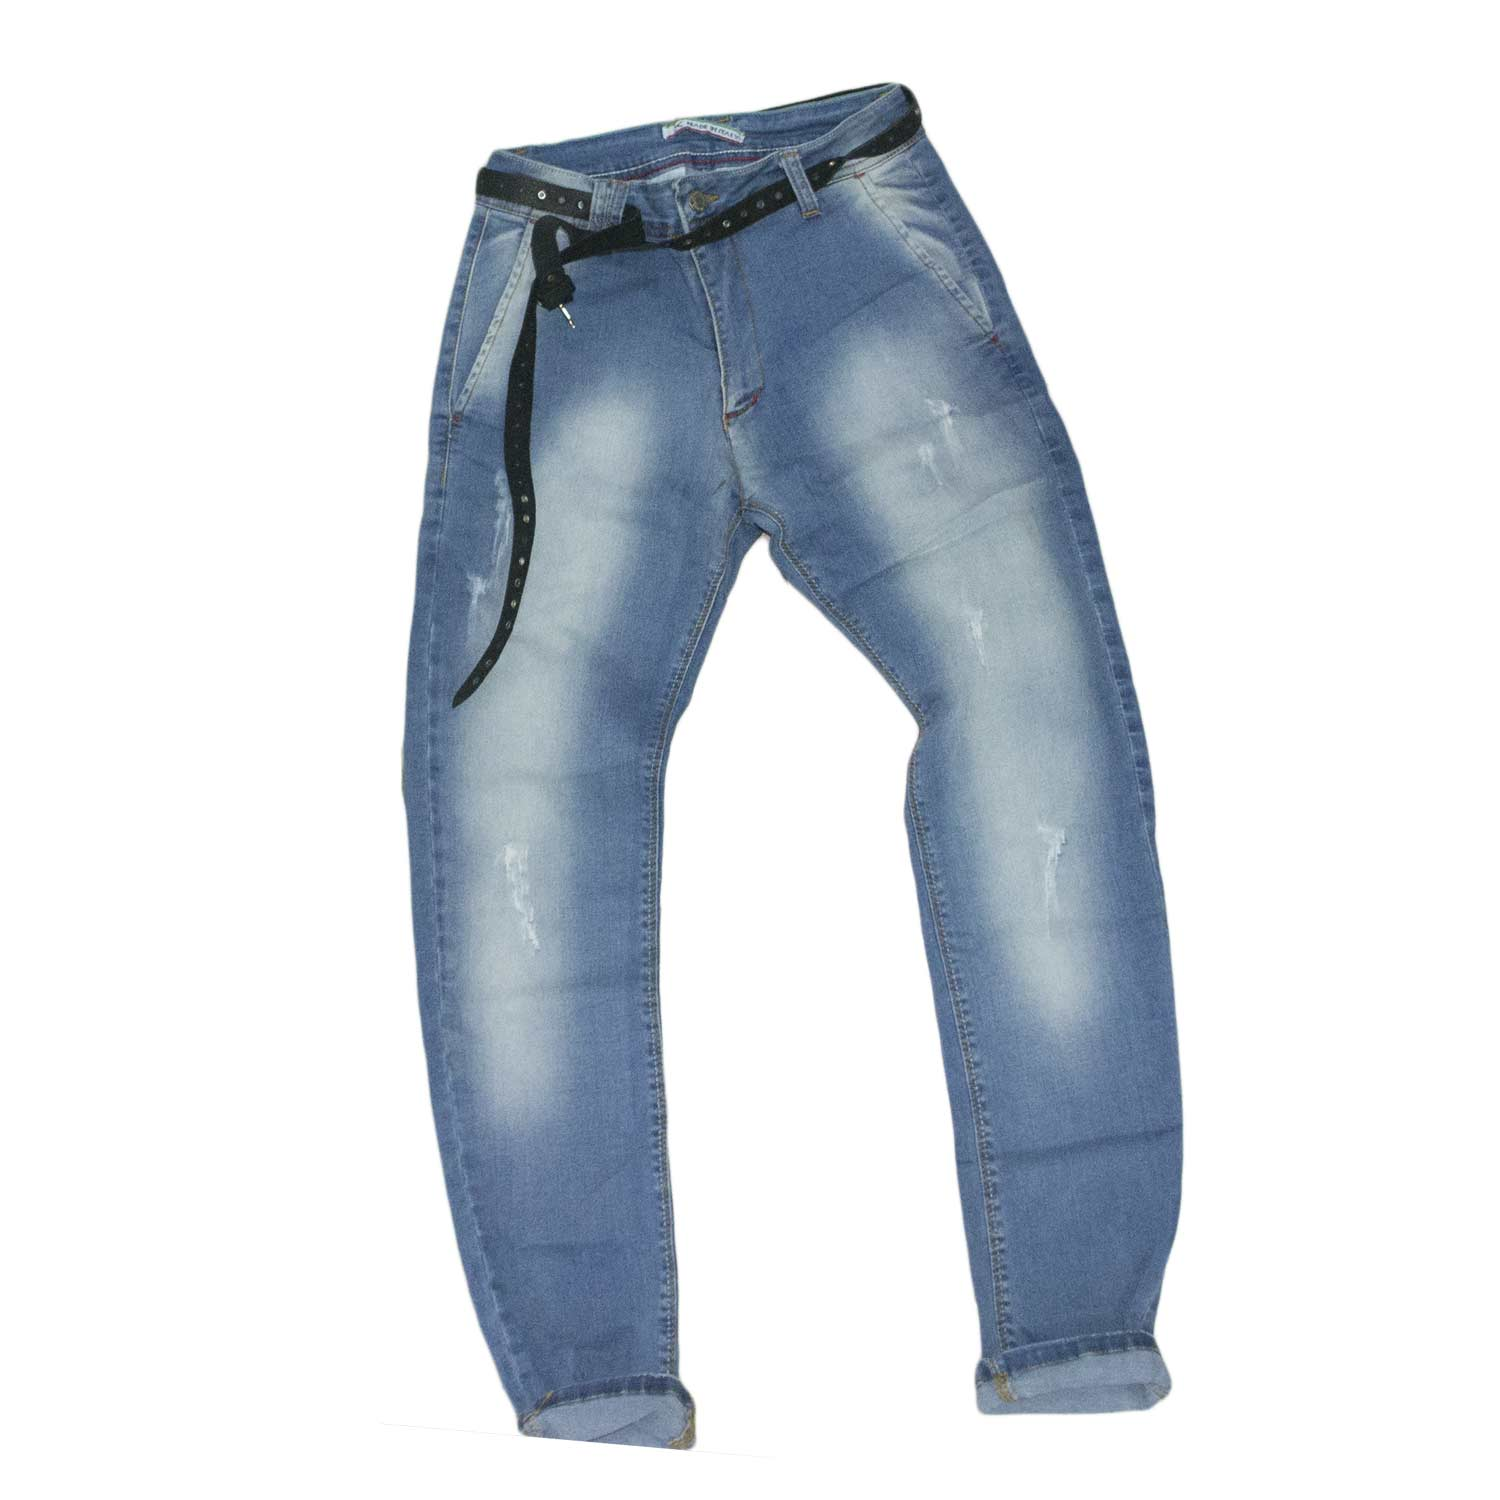 jeans uomo man blu cintura nero moda made in italy.